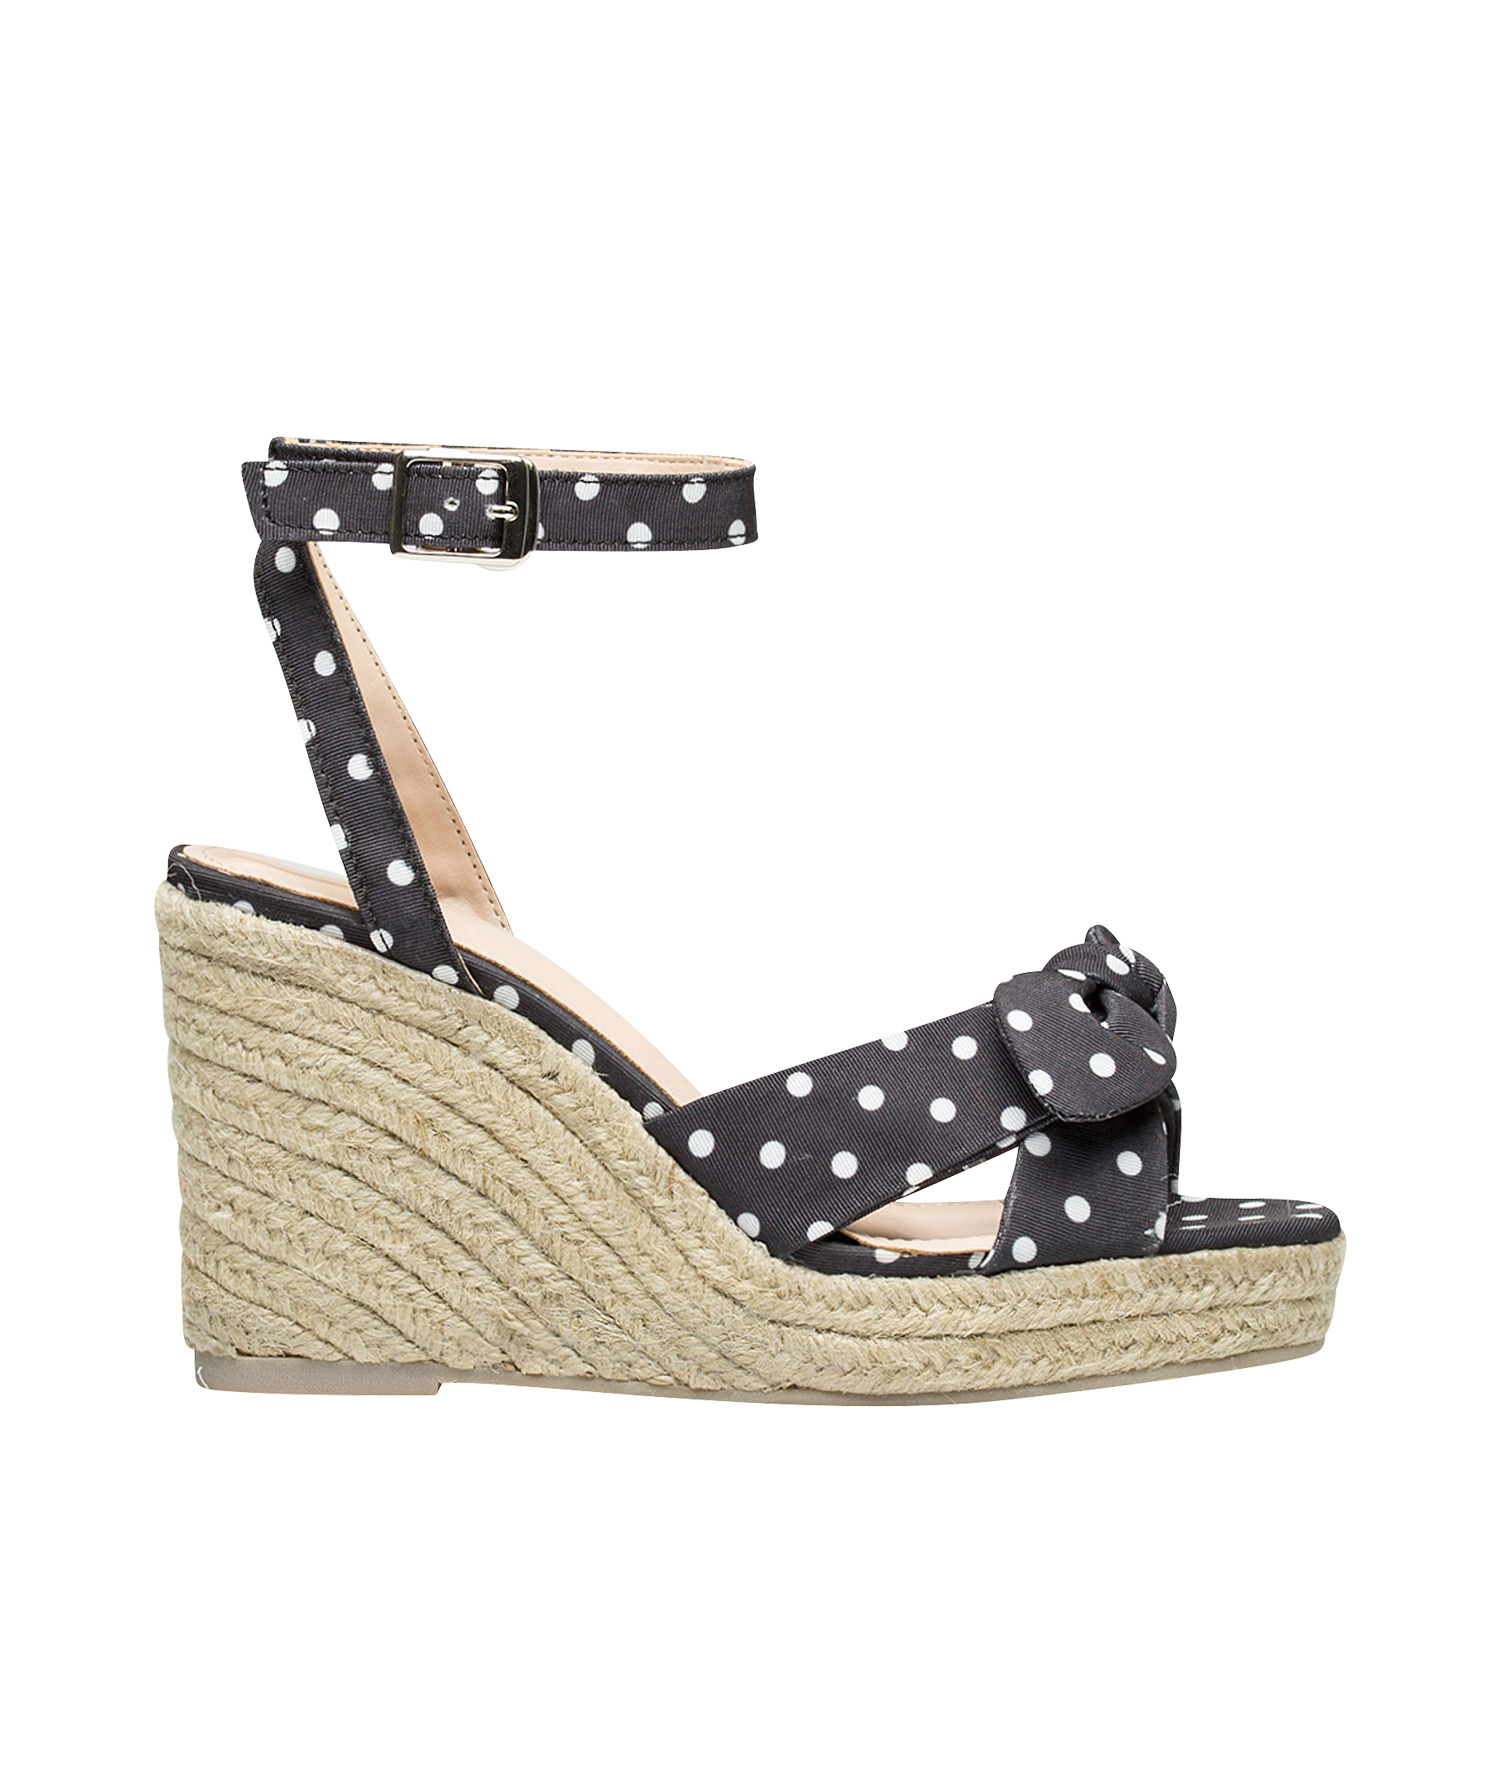 041f011f2 AnnaKastle Womens Knotted Bow Front Espadrille Wedge Sandals Black + Dot